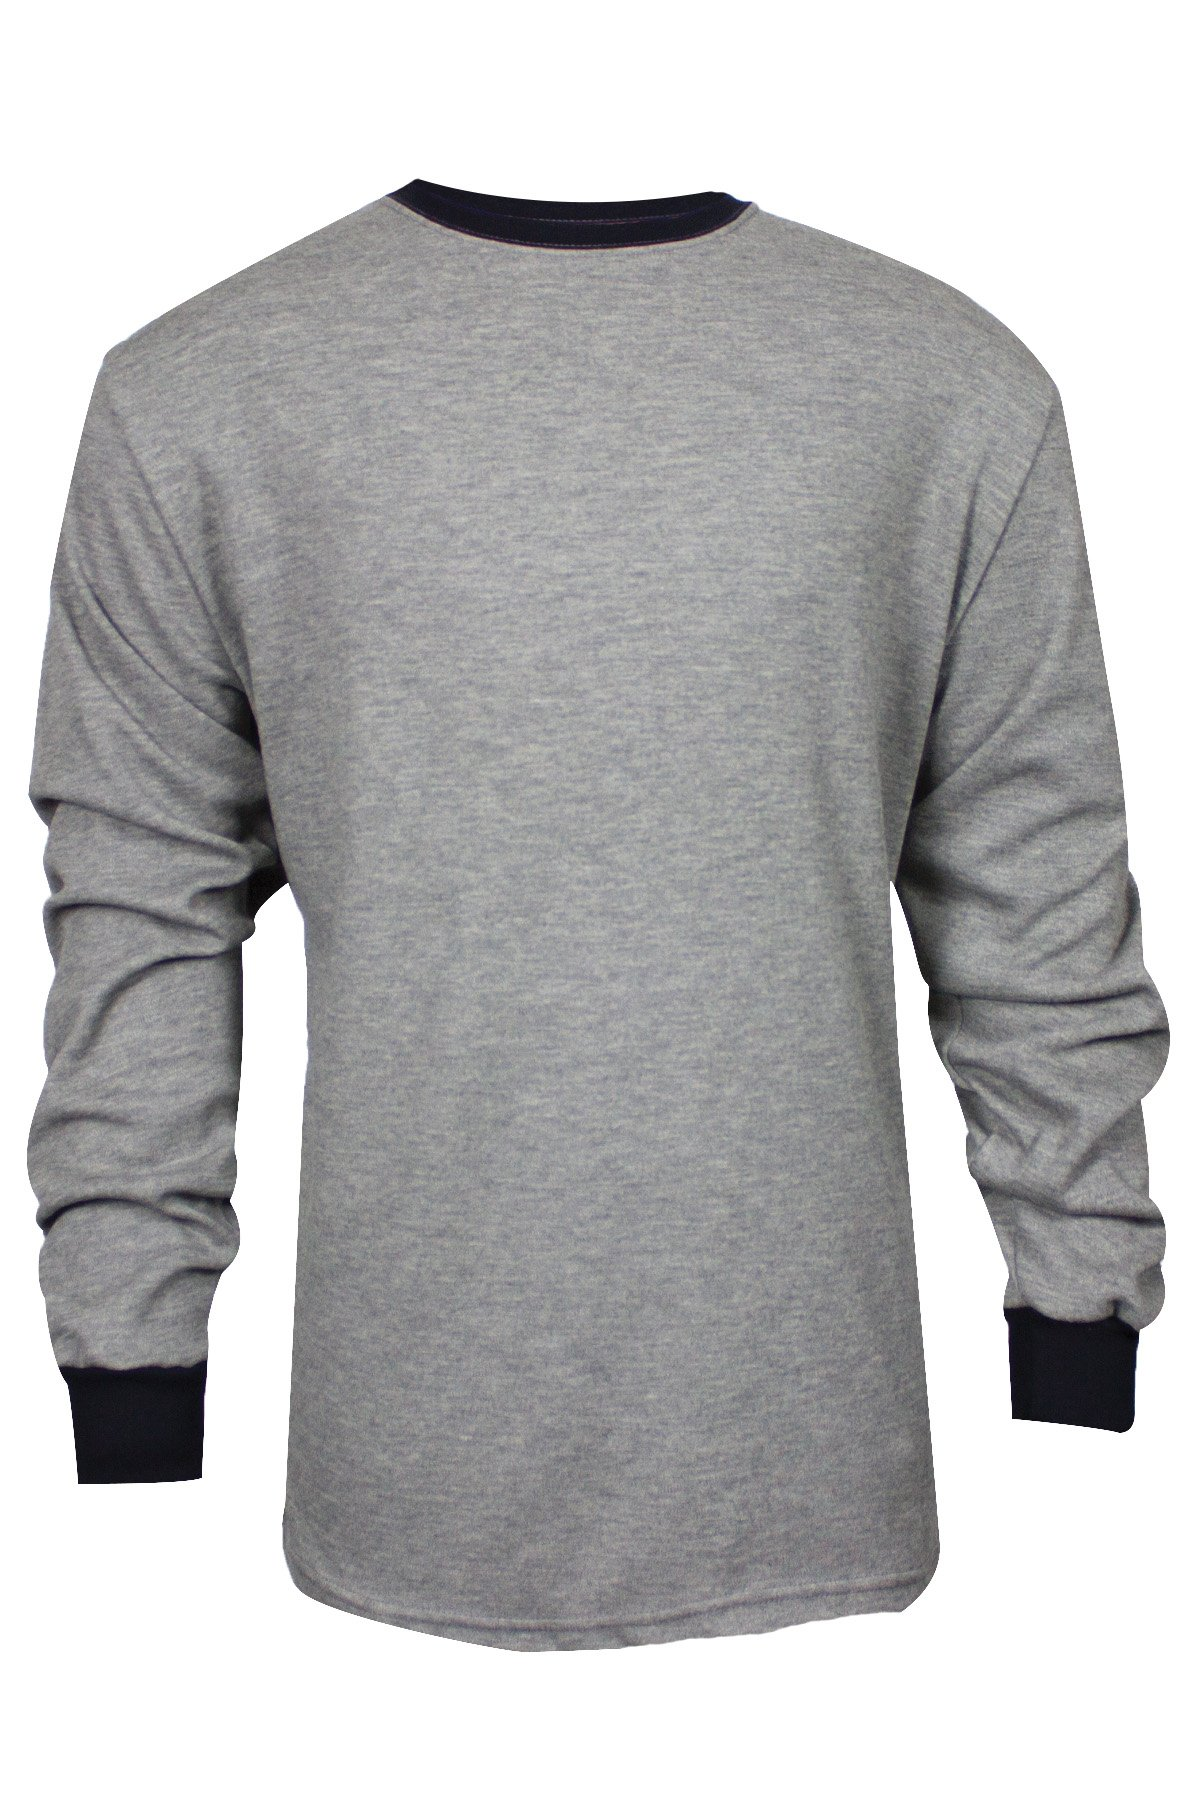 National Safety Apparel C541NGELS2X TECGEN Select Long Sleeve FR T-Shirt, XX-Large, Grey